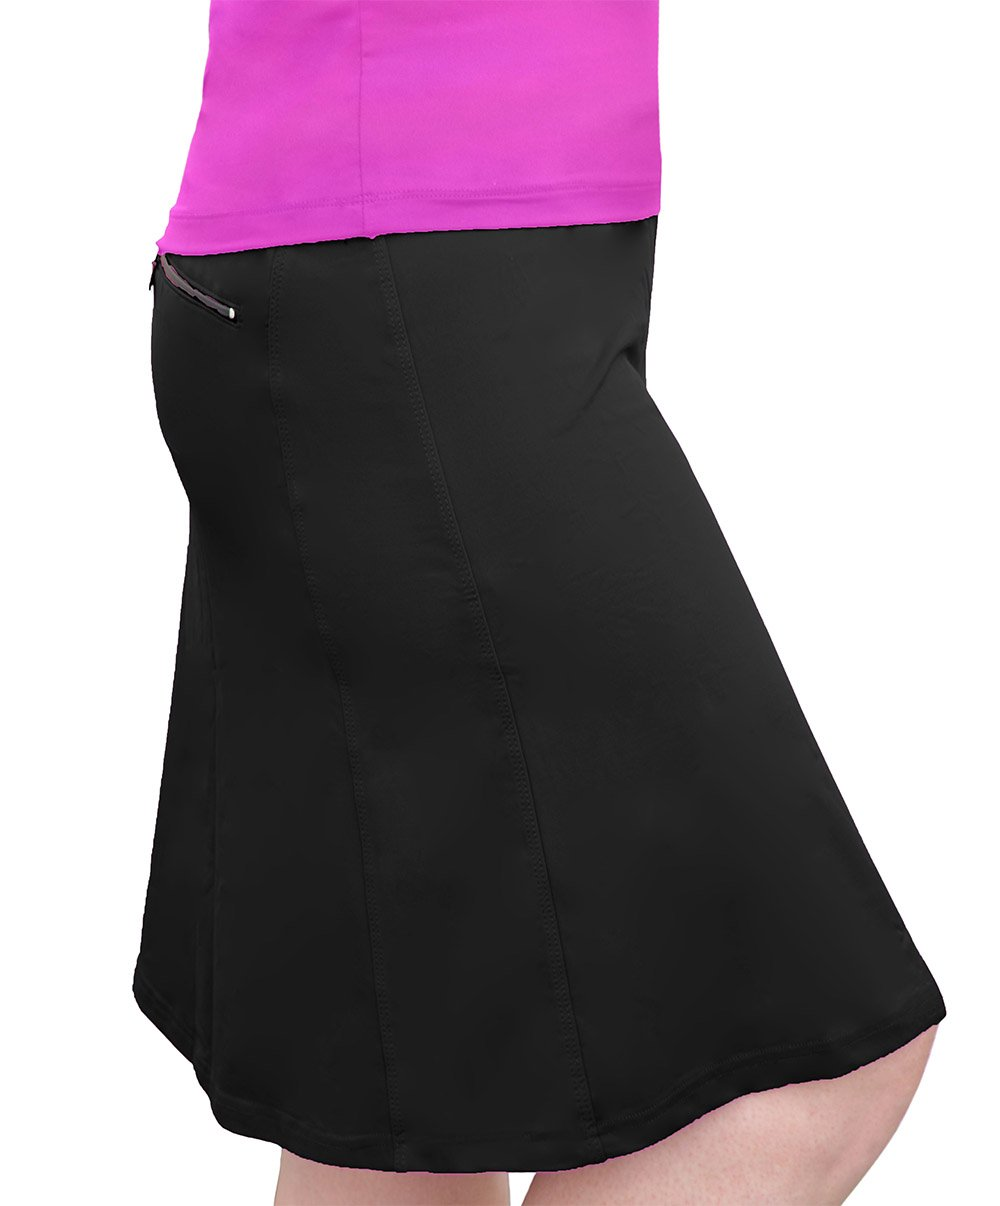 Kosher Casual Women's Modest Knee-Length Swim & Sport Skirt With Built-In Shorts - Skort Style XL Black